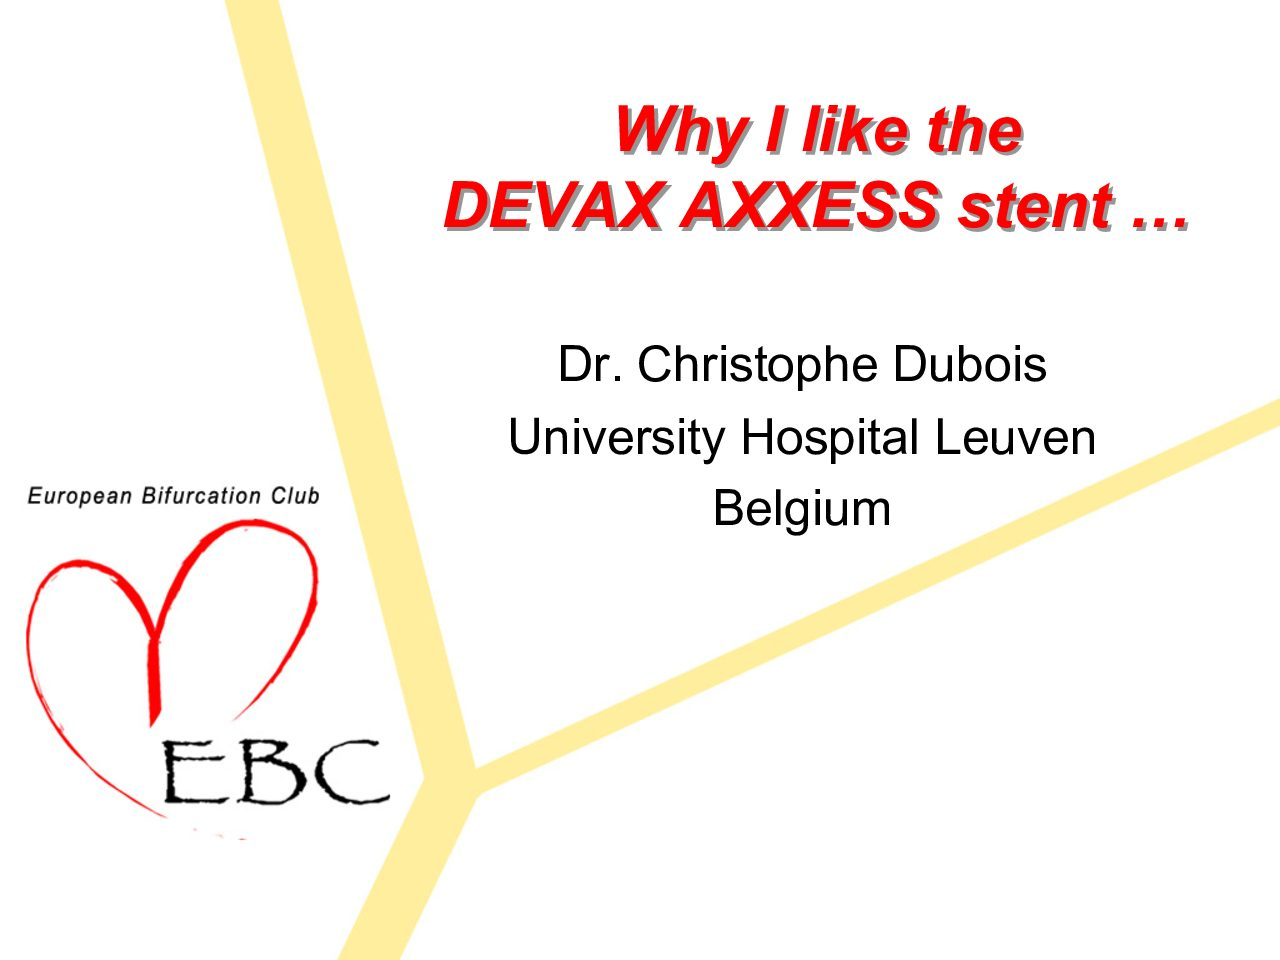 Why I like the DEVAX AXXESS stent …